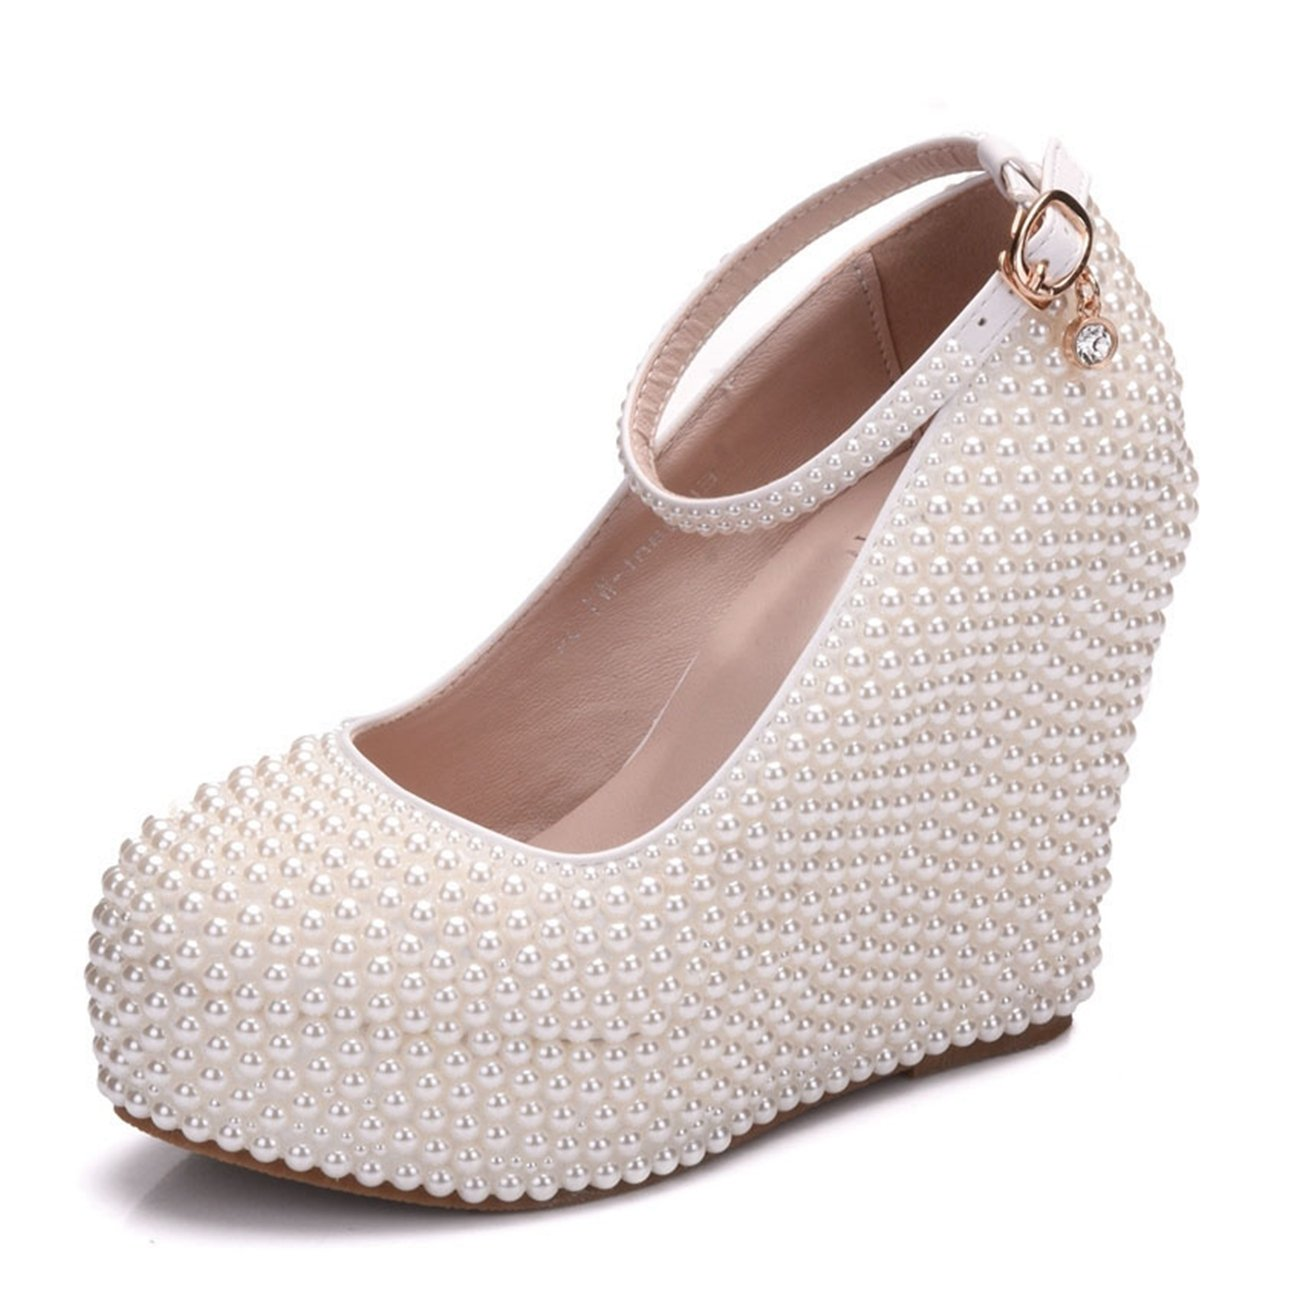 Minishion Womens Hidden High Platform Pearl Beading Wedge Heel Wedding Evening Shoes B07558RNH9 4.5 B(M) US|Ivory-10cm Heel